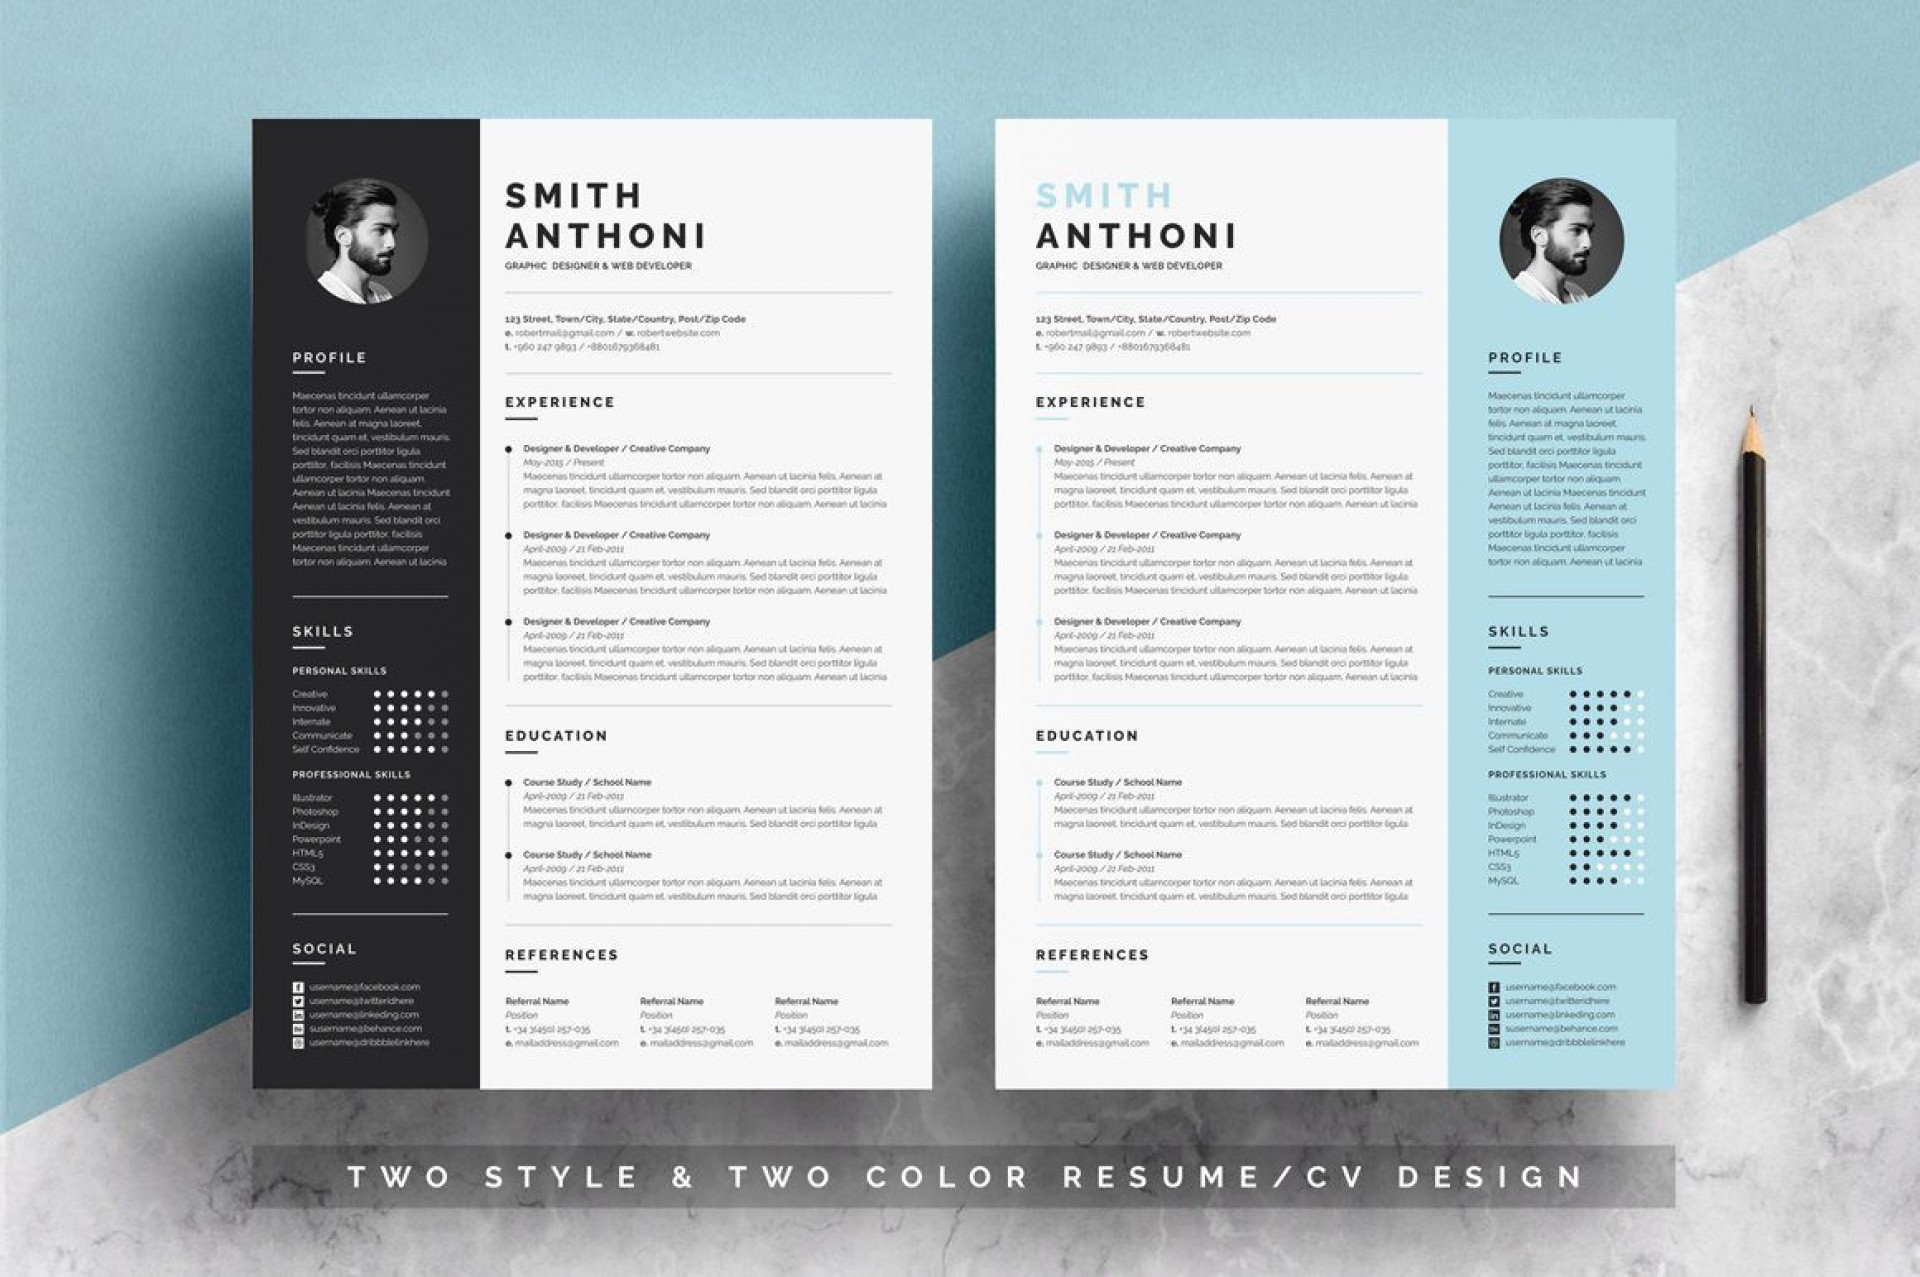 004 Stunning Download Free Resume Template For Mac Page Sample  Pages1920